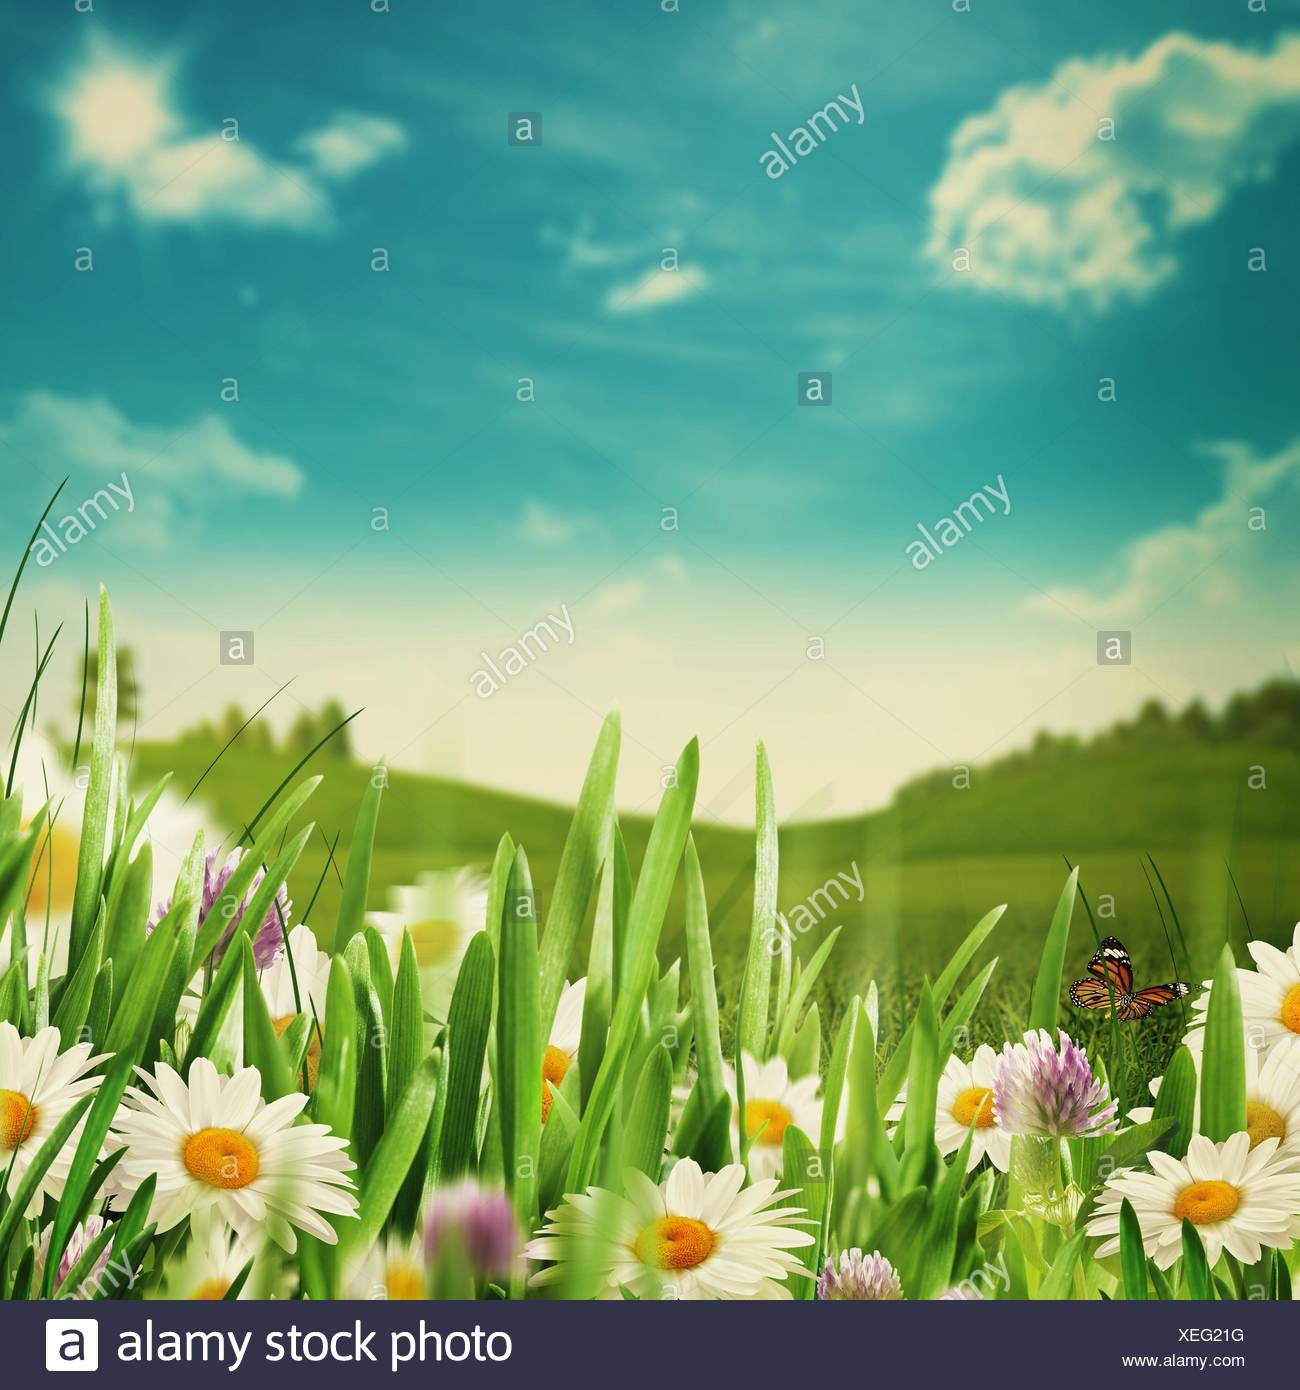 green grass blue sky flowers garden beauty meadow with flowers and green grass under blue skies seasonal backgrounds skies